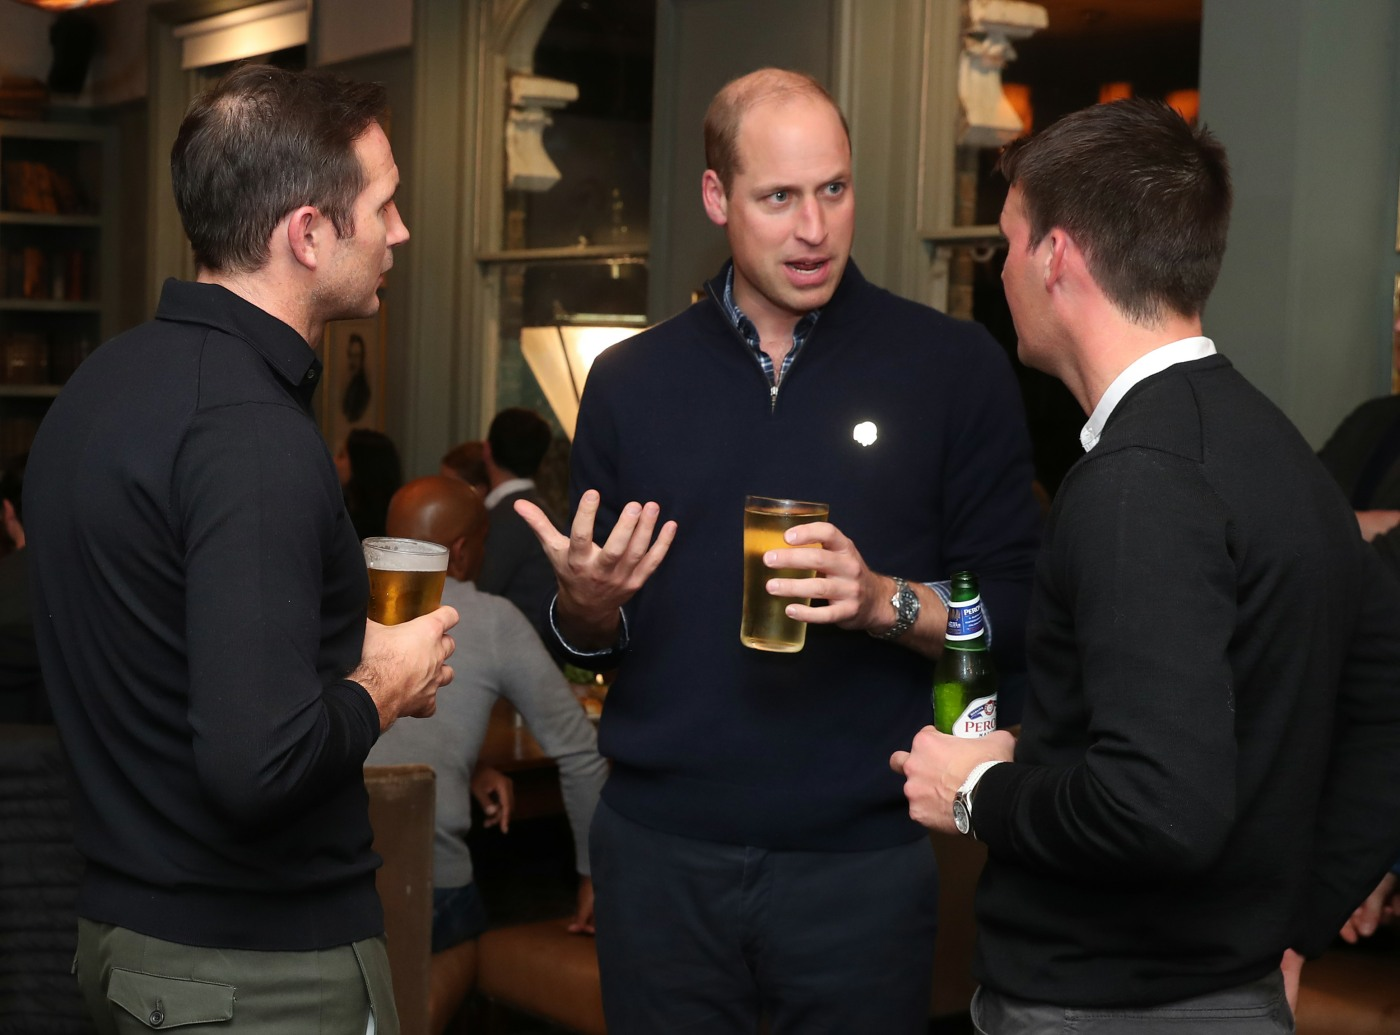 Prince William promises to 'not rock the boat' when he inherits the Duchy of Cornwall